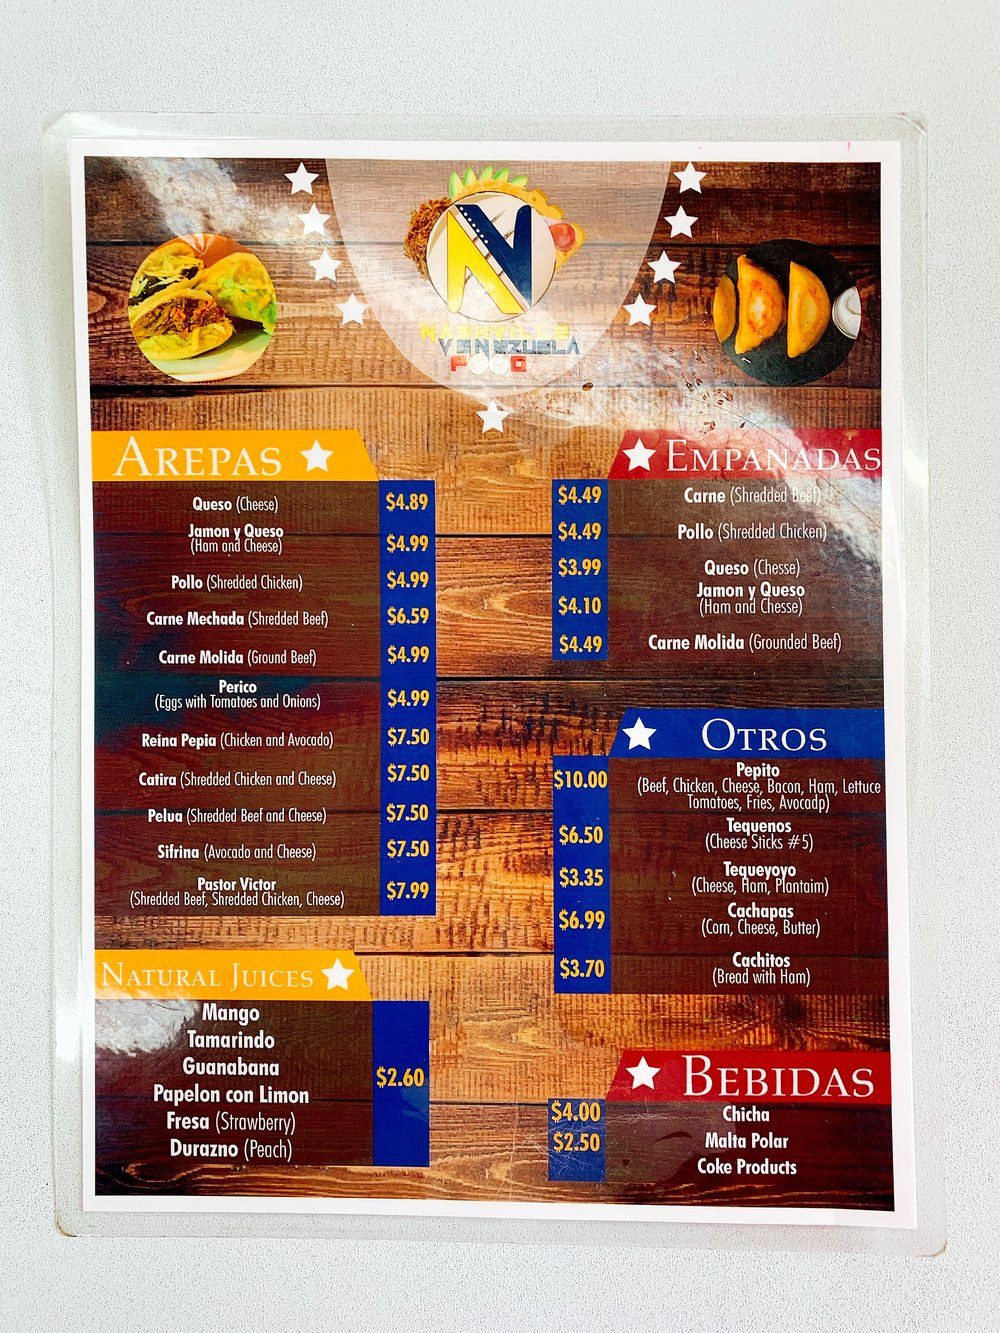 Menus Are Available With English Translation